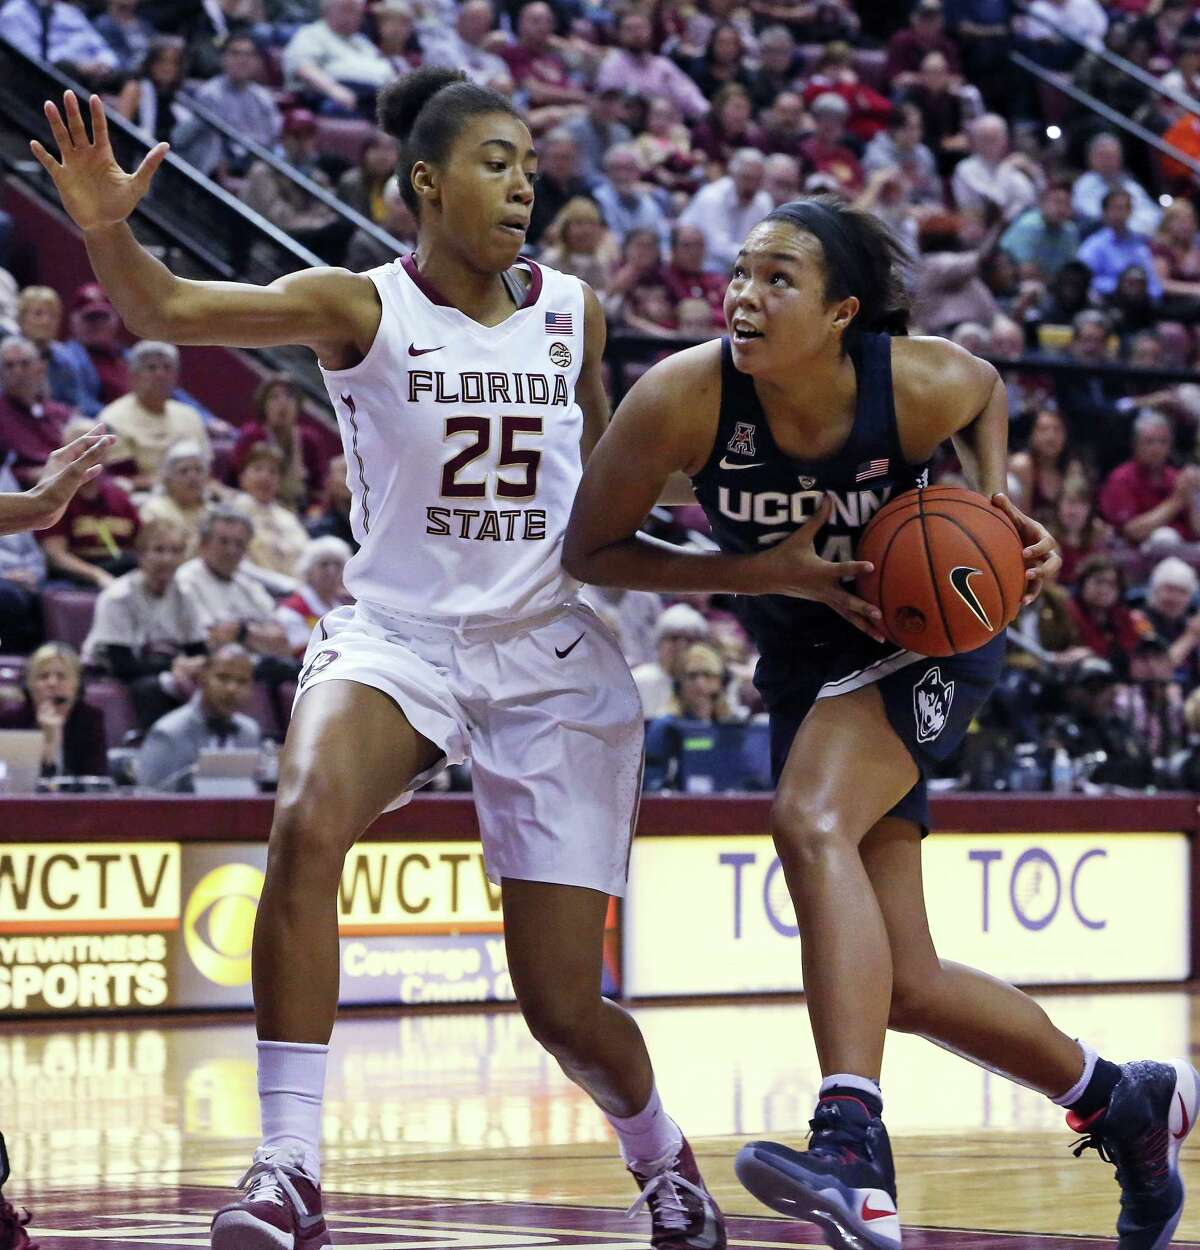 Connecticut's Napheesa Collier drives to the basket as Florida State's Ama Degbeon defends in the second quarter of an NCAA college basketball game, Monday, Nov. 14, 2016, in Tallahassee, Fla. UConn won the game 78-76. (AP Photo/Steve Cannon)